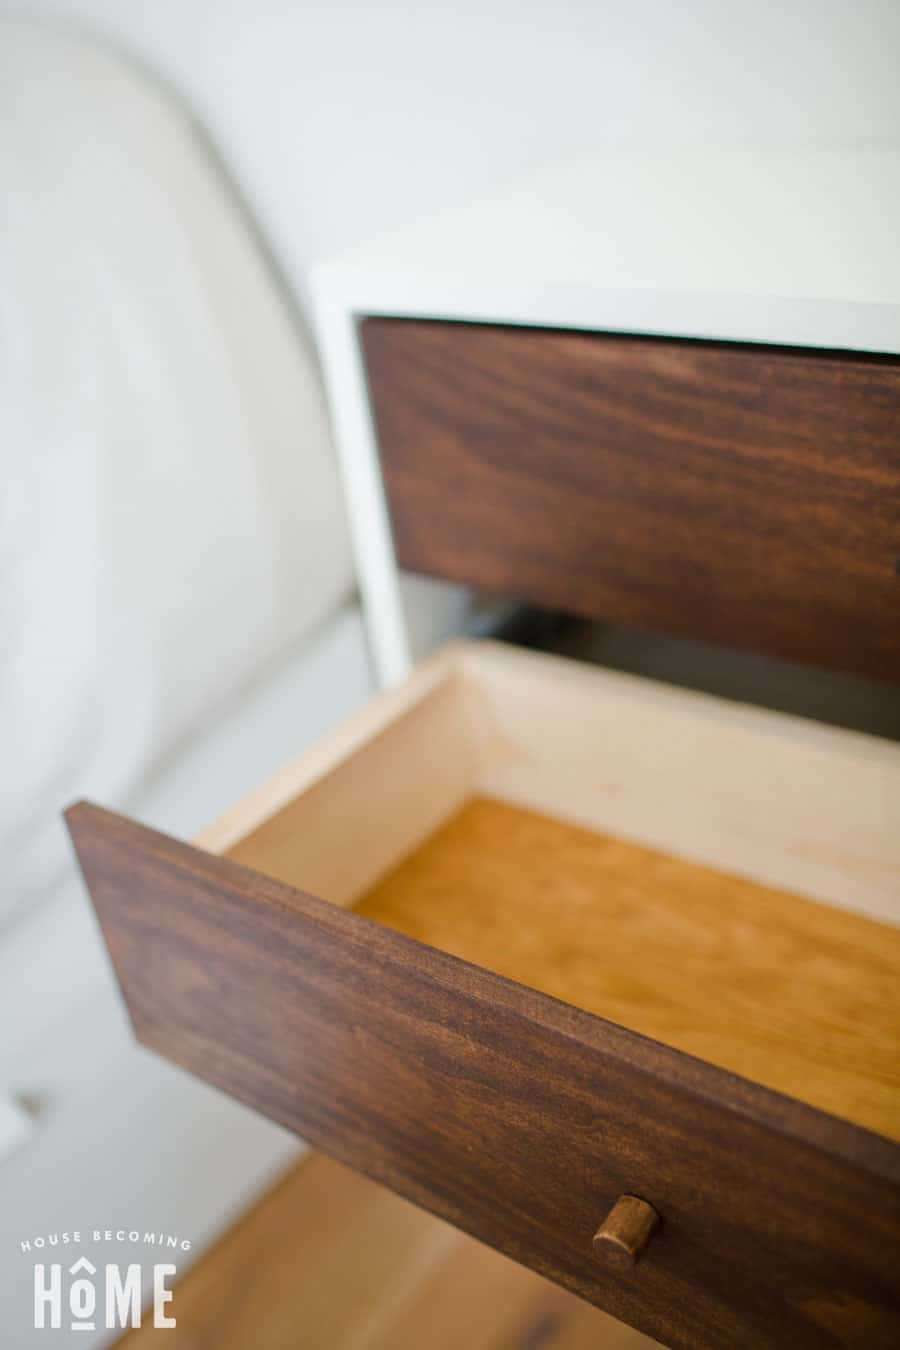 nightstand drawer open